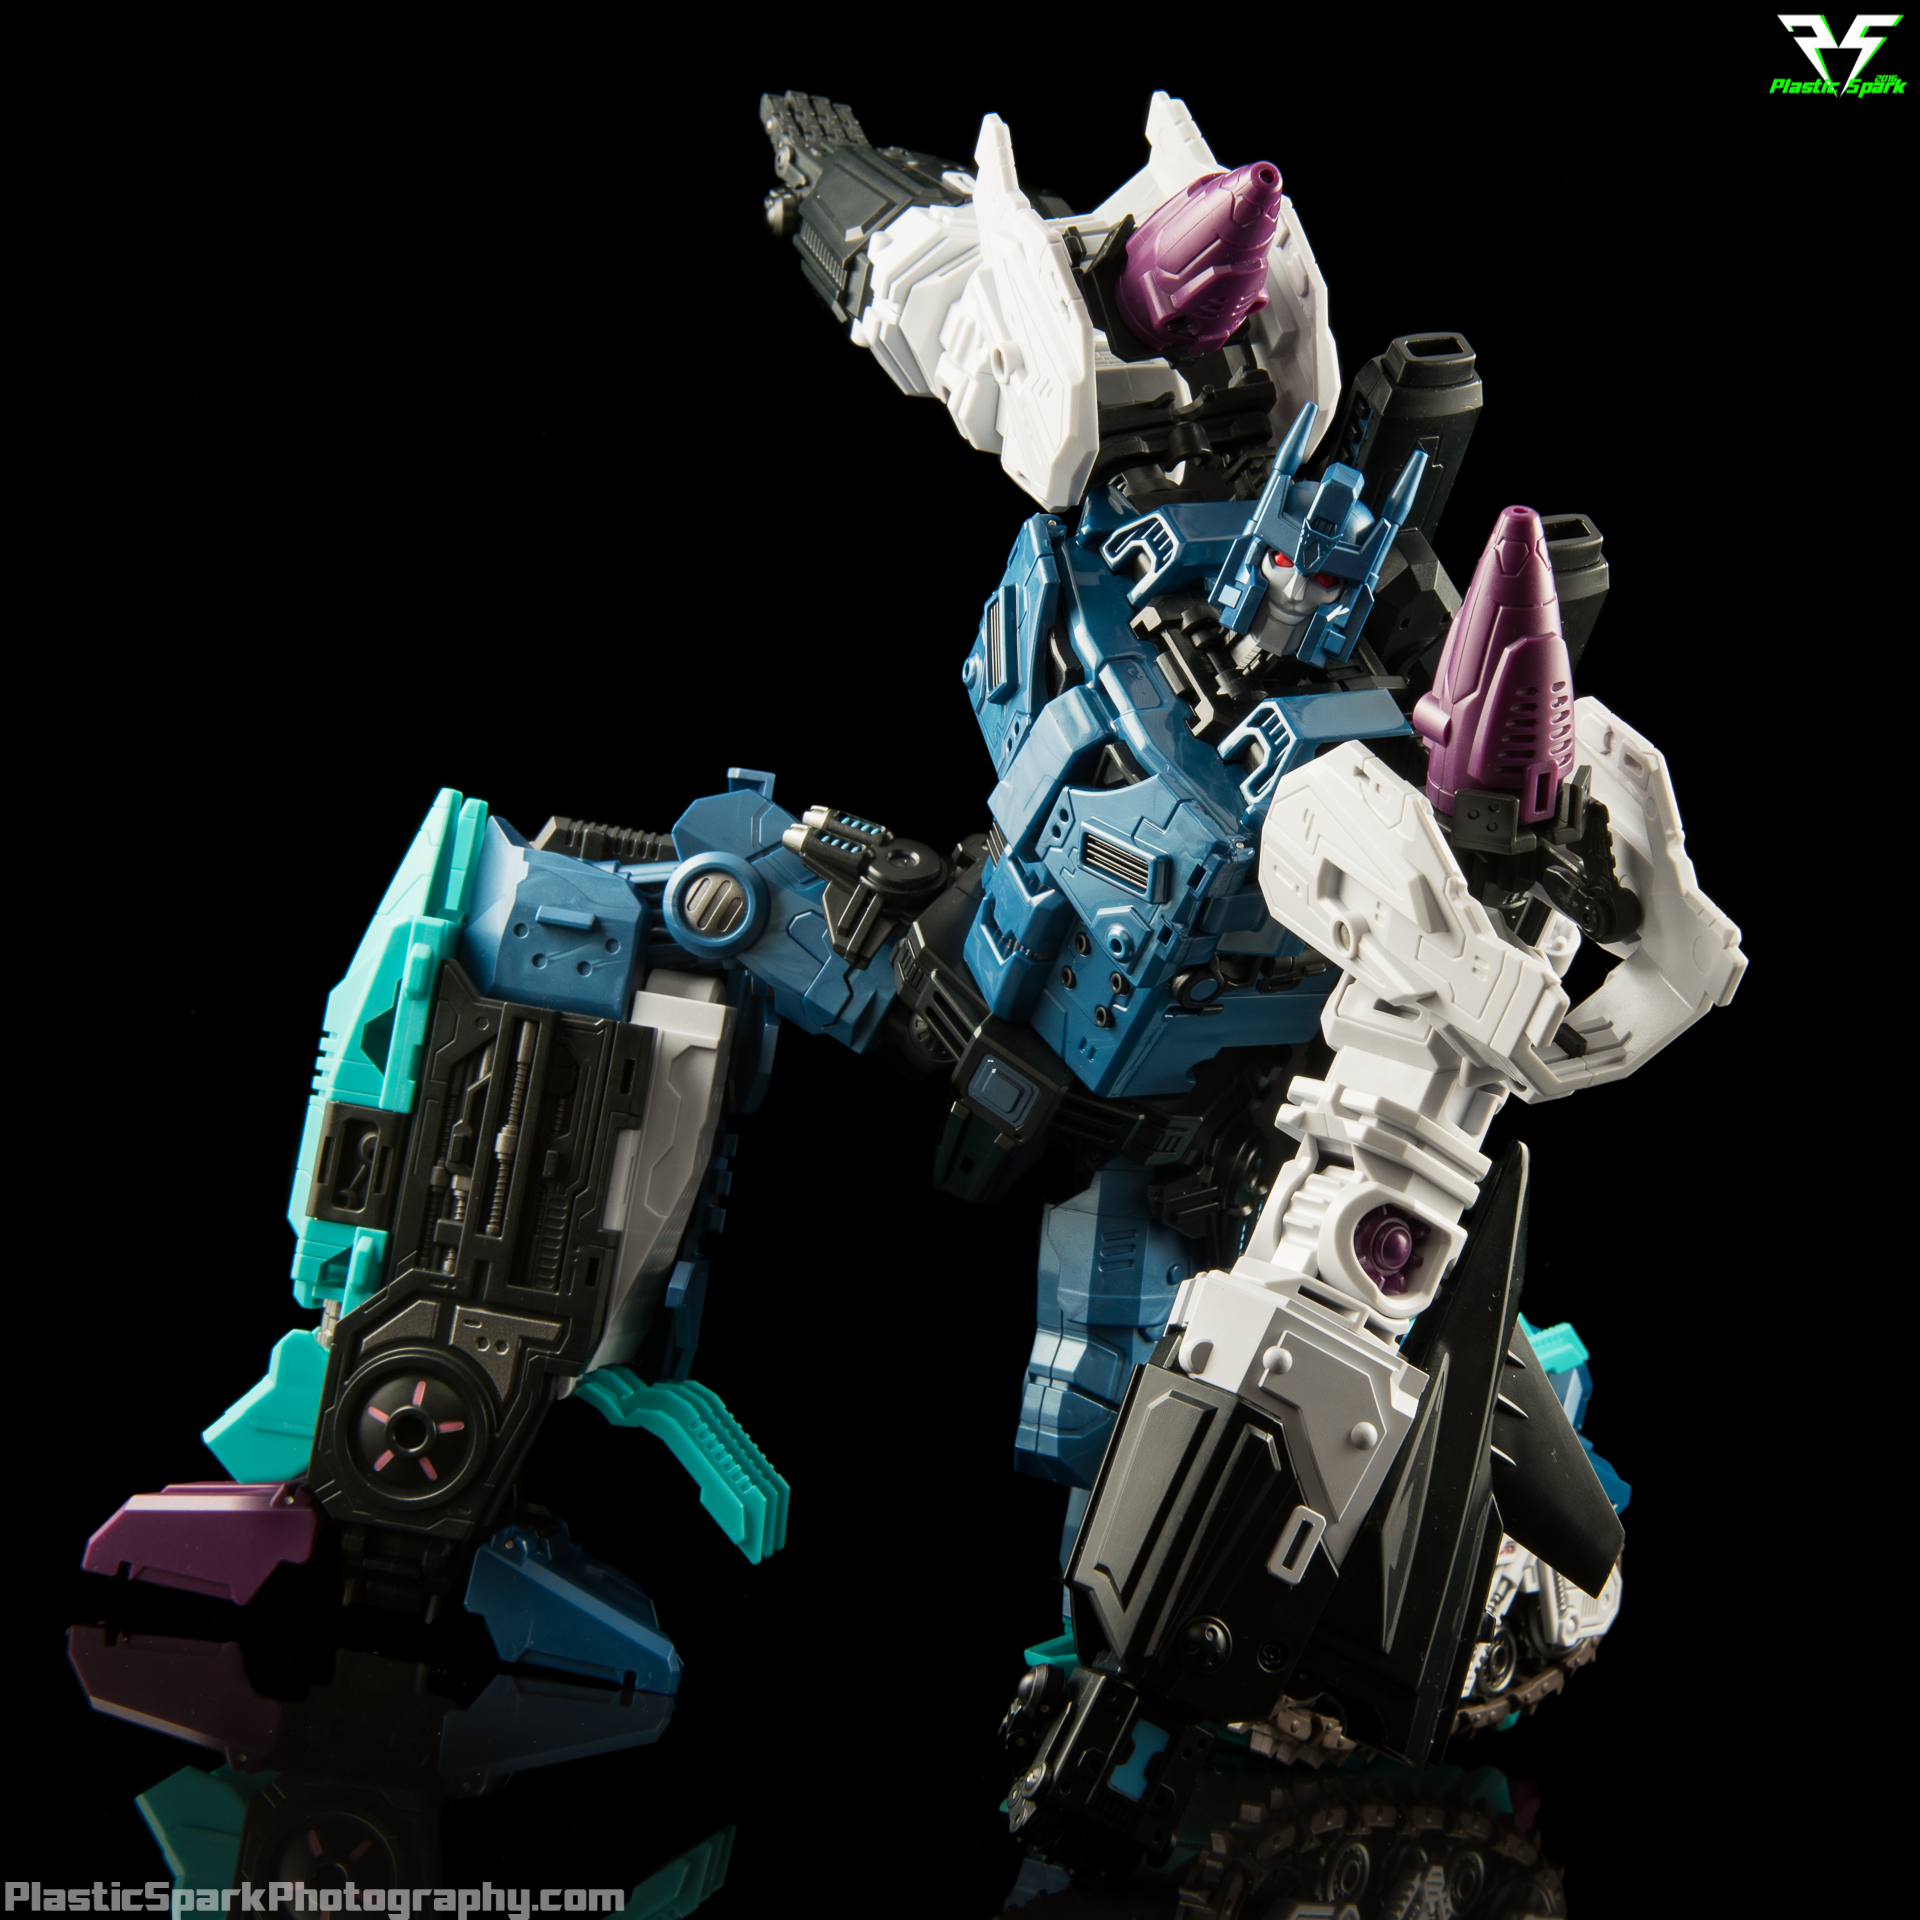 Mastemind-Creations-R17-Carnifex-(35-of-54).png